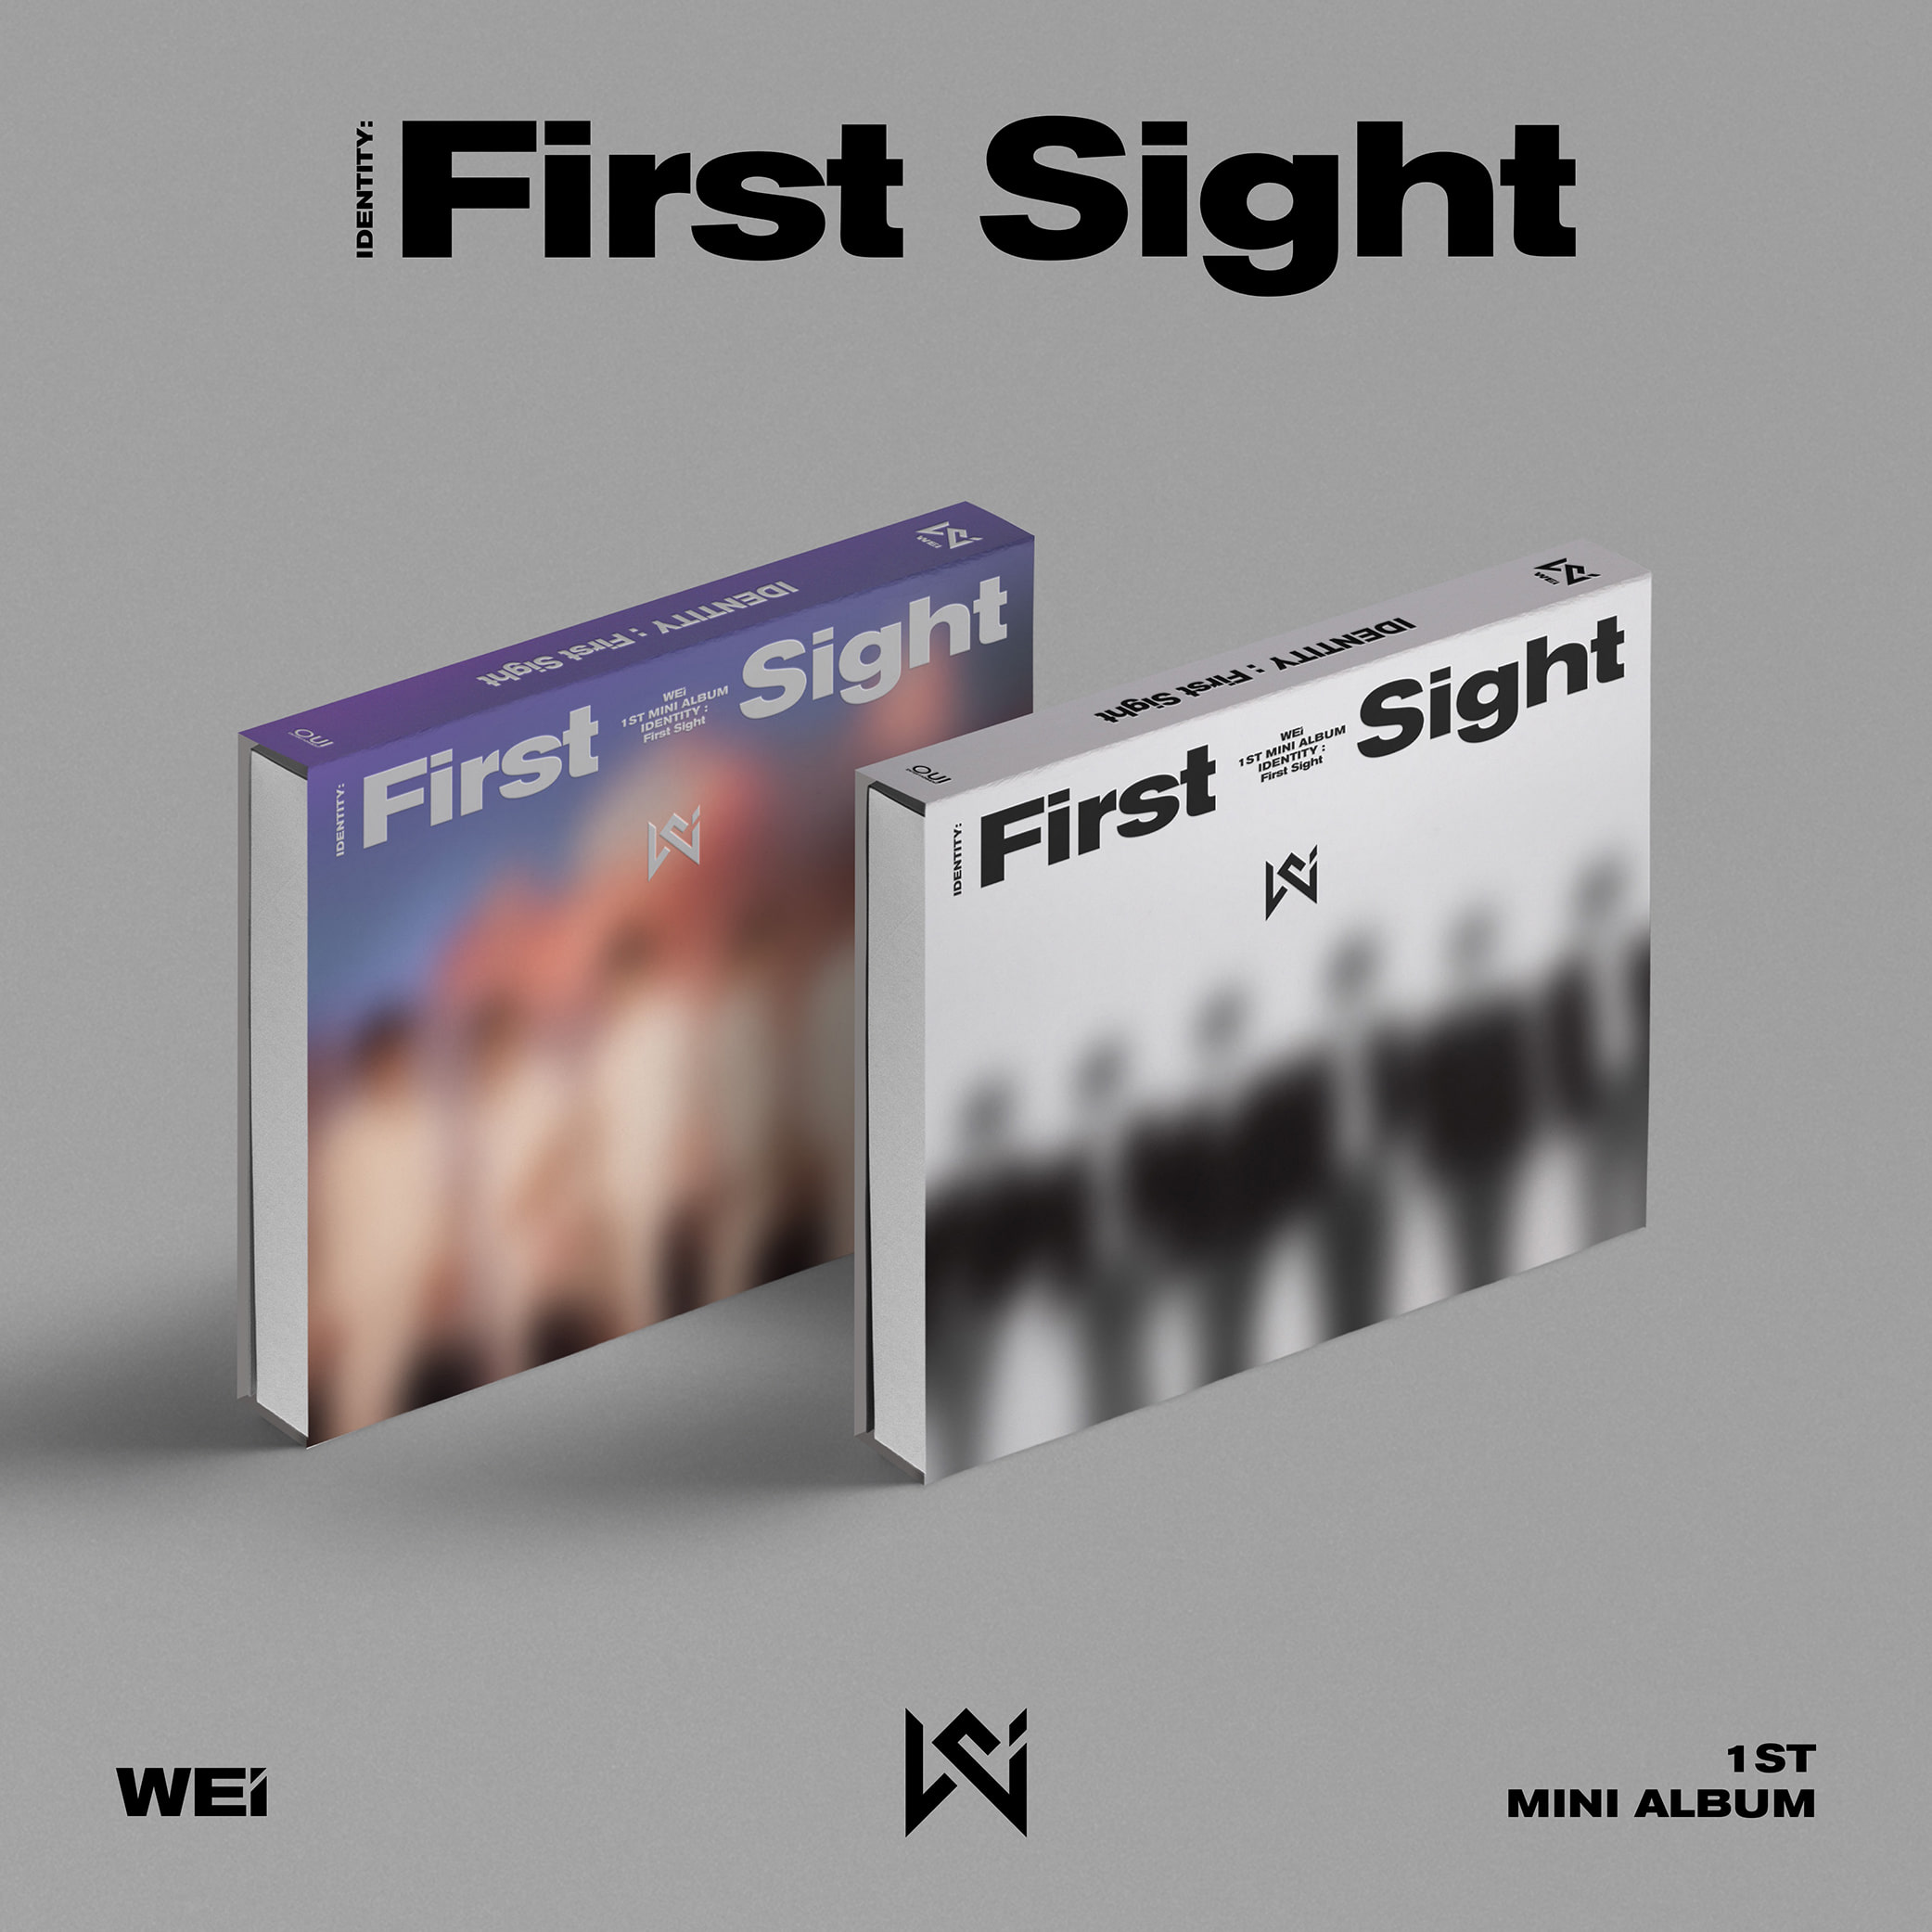 WEi - Mini Album Vol. 1 [IDENTITY : First Sight] (WE Ver. + i Ver.)케이팝스토어(kpop store)